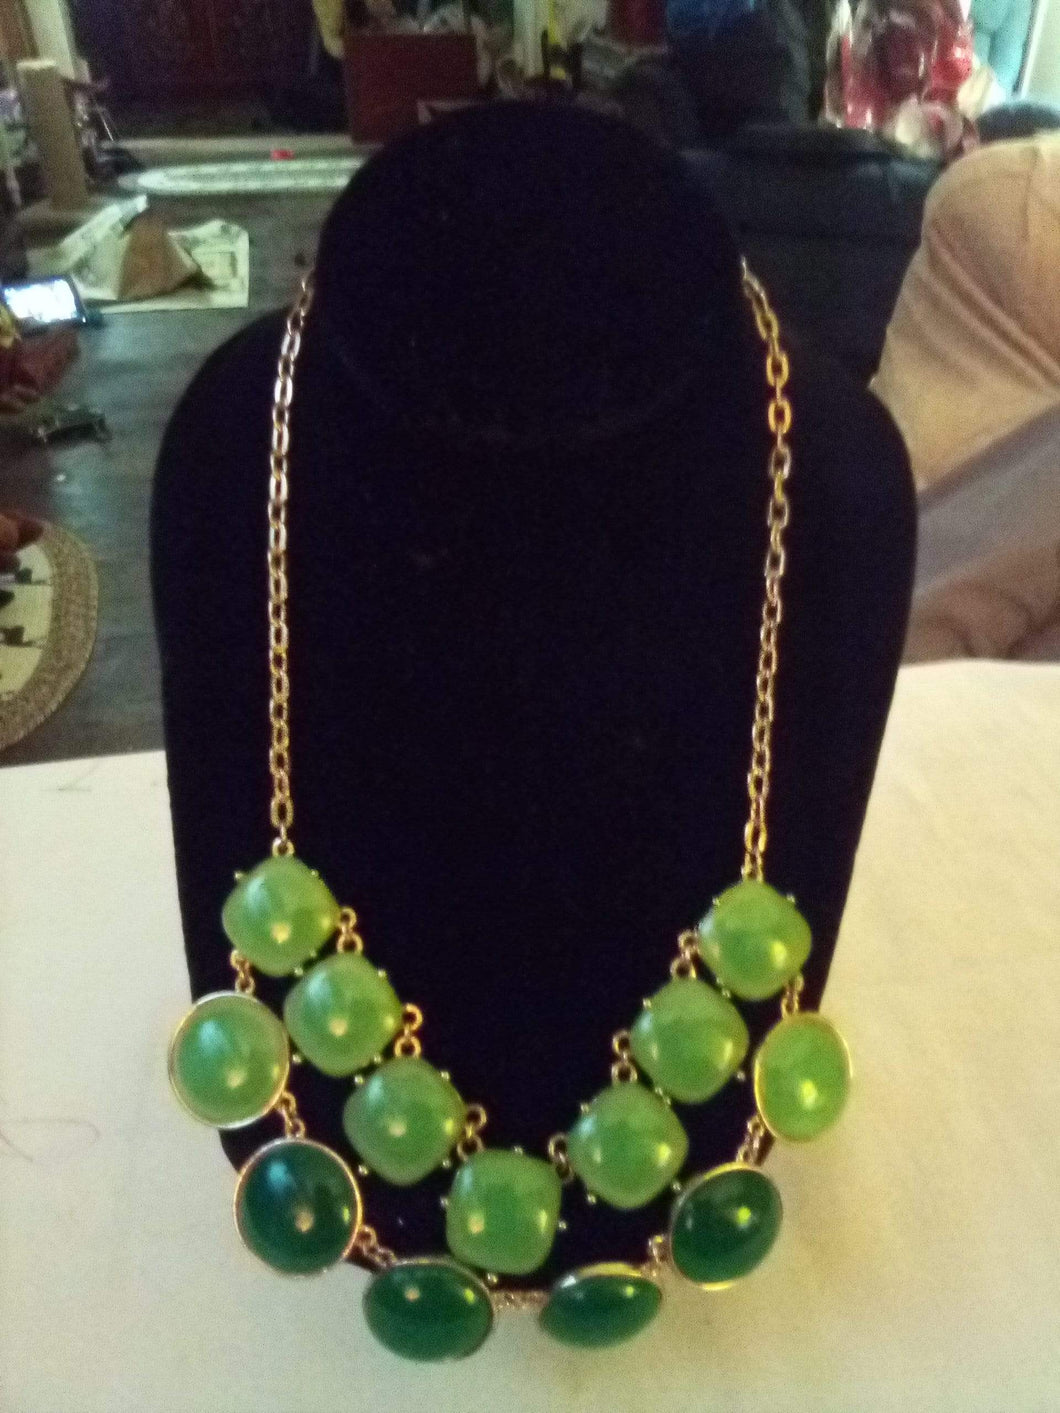 Two tone green dressy necklace - B&P'sringsnthings